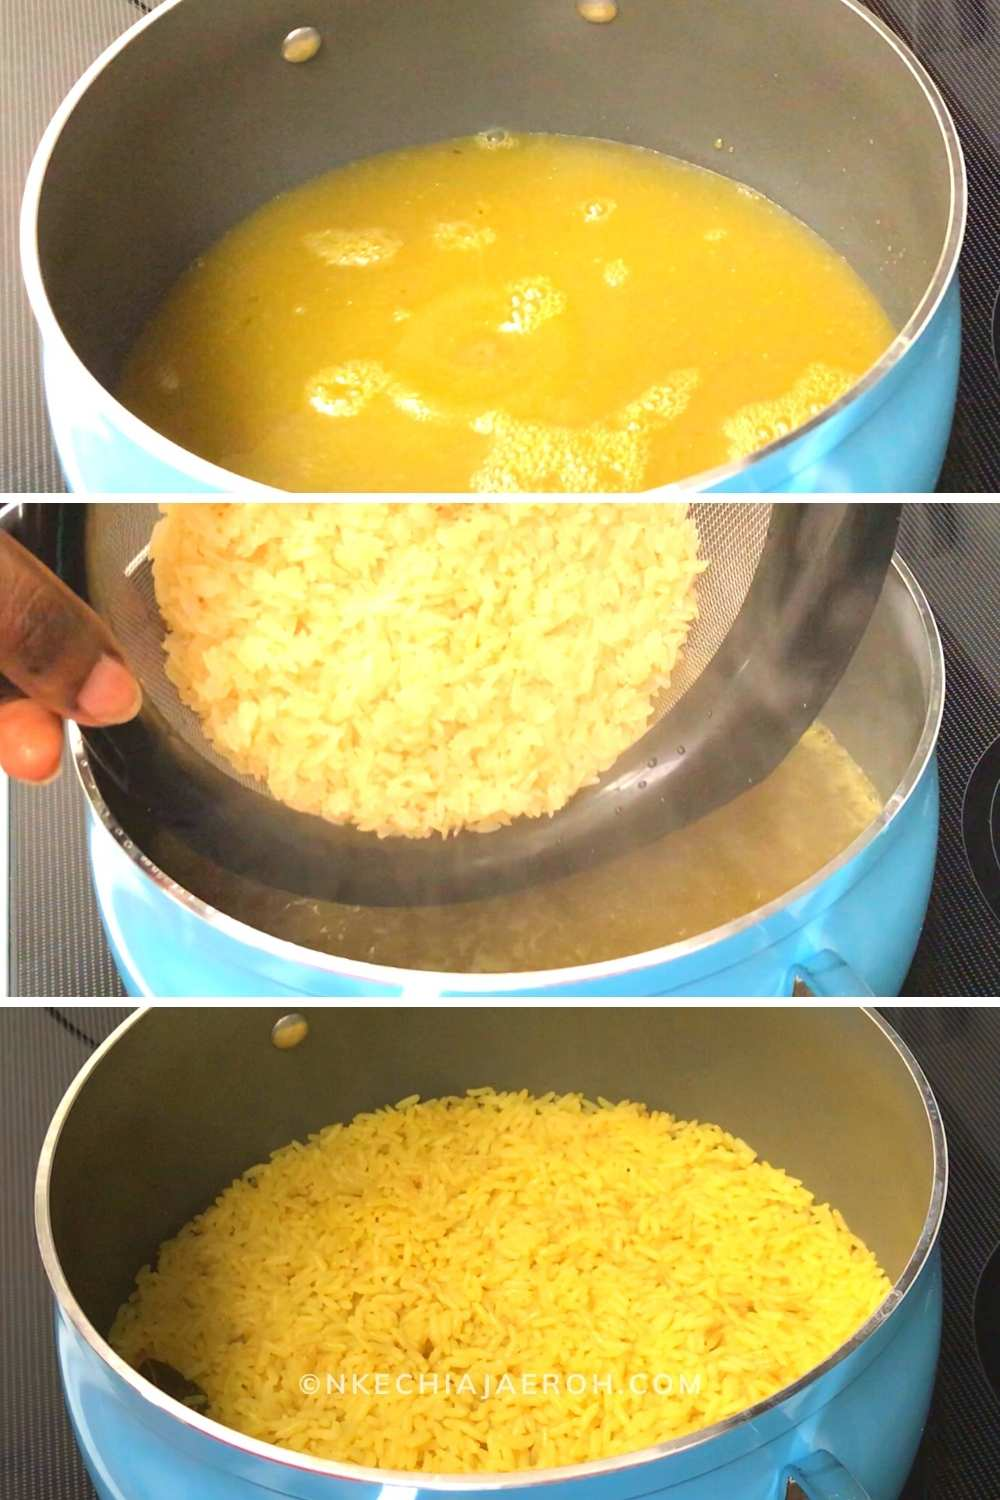 First, cook the rice in a well-seasoned broth. I used chicken broth but you can vegetable broth or seasoned water.